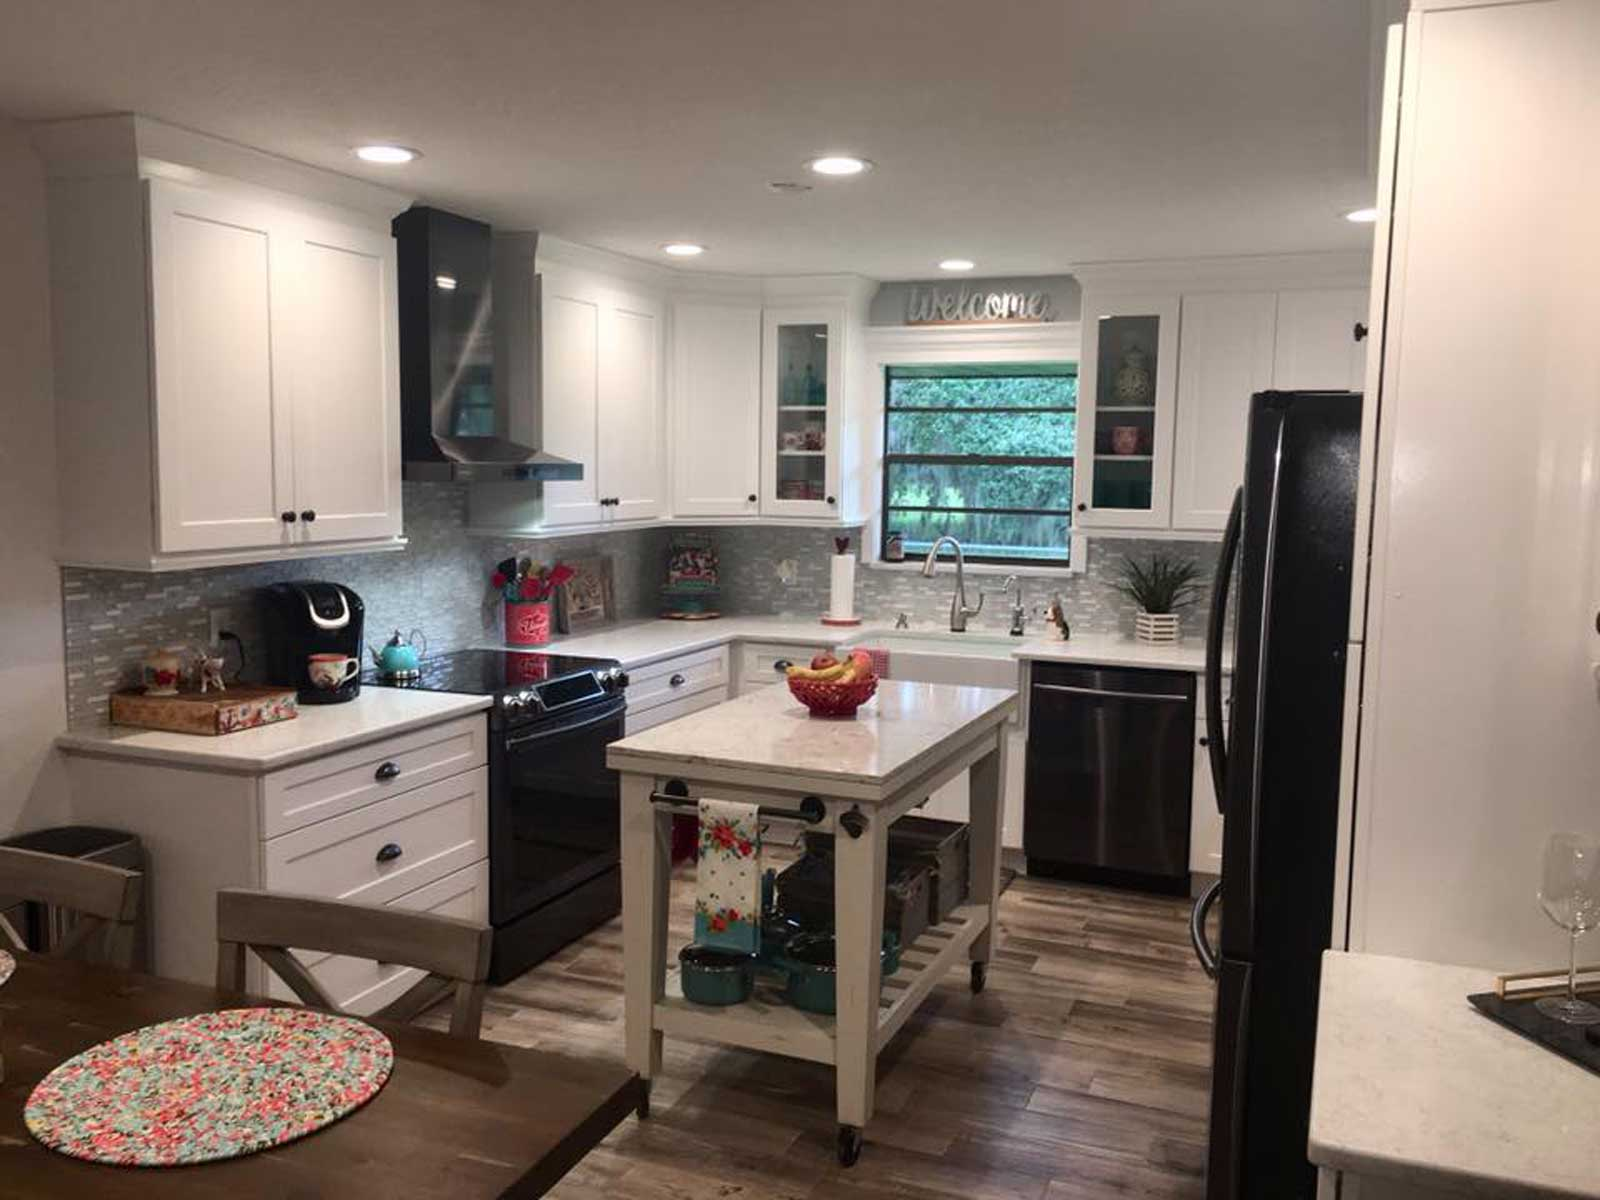 Beautiful coastalfarmhouse kitchen  RTA Cabinets  More LLC